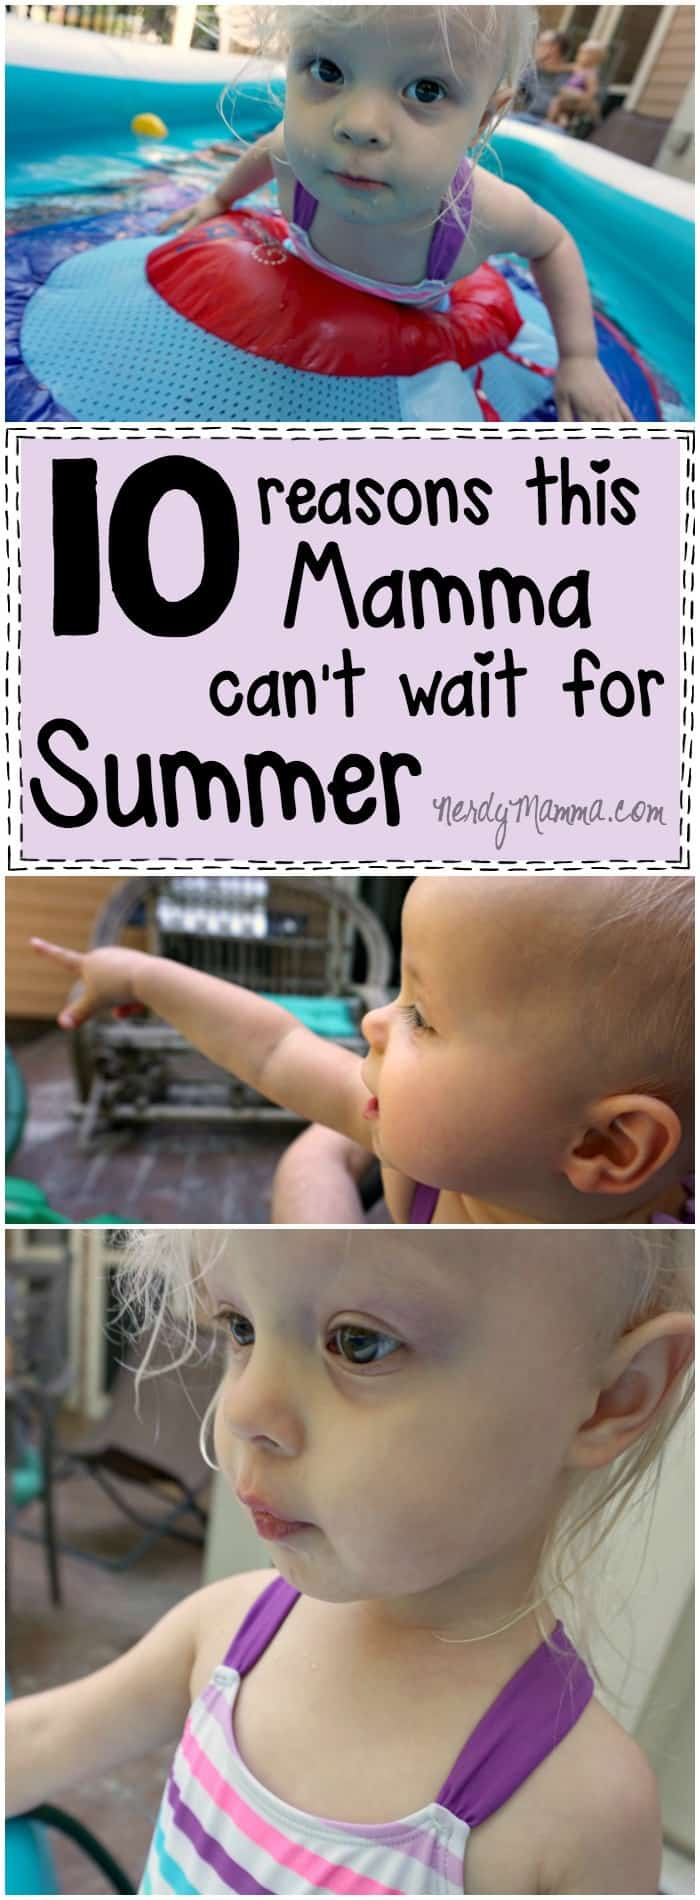 This mom's reasons for being excited about the summer--hilarious. She's so funny!